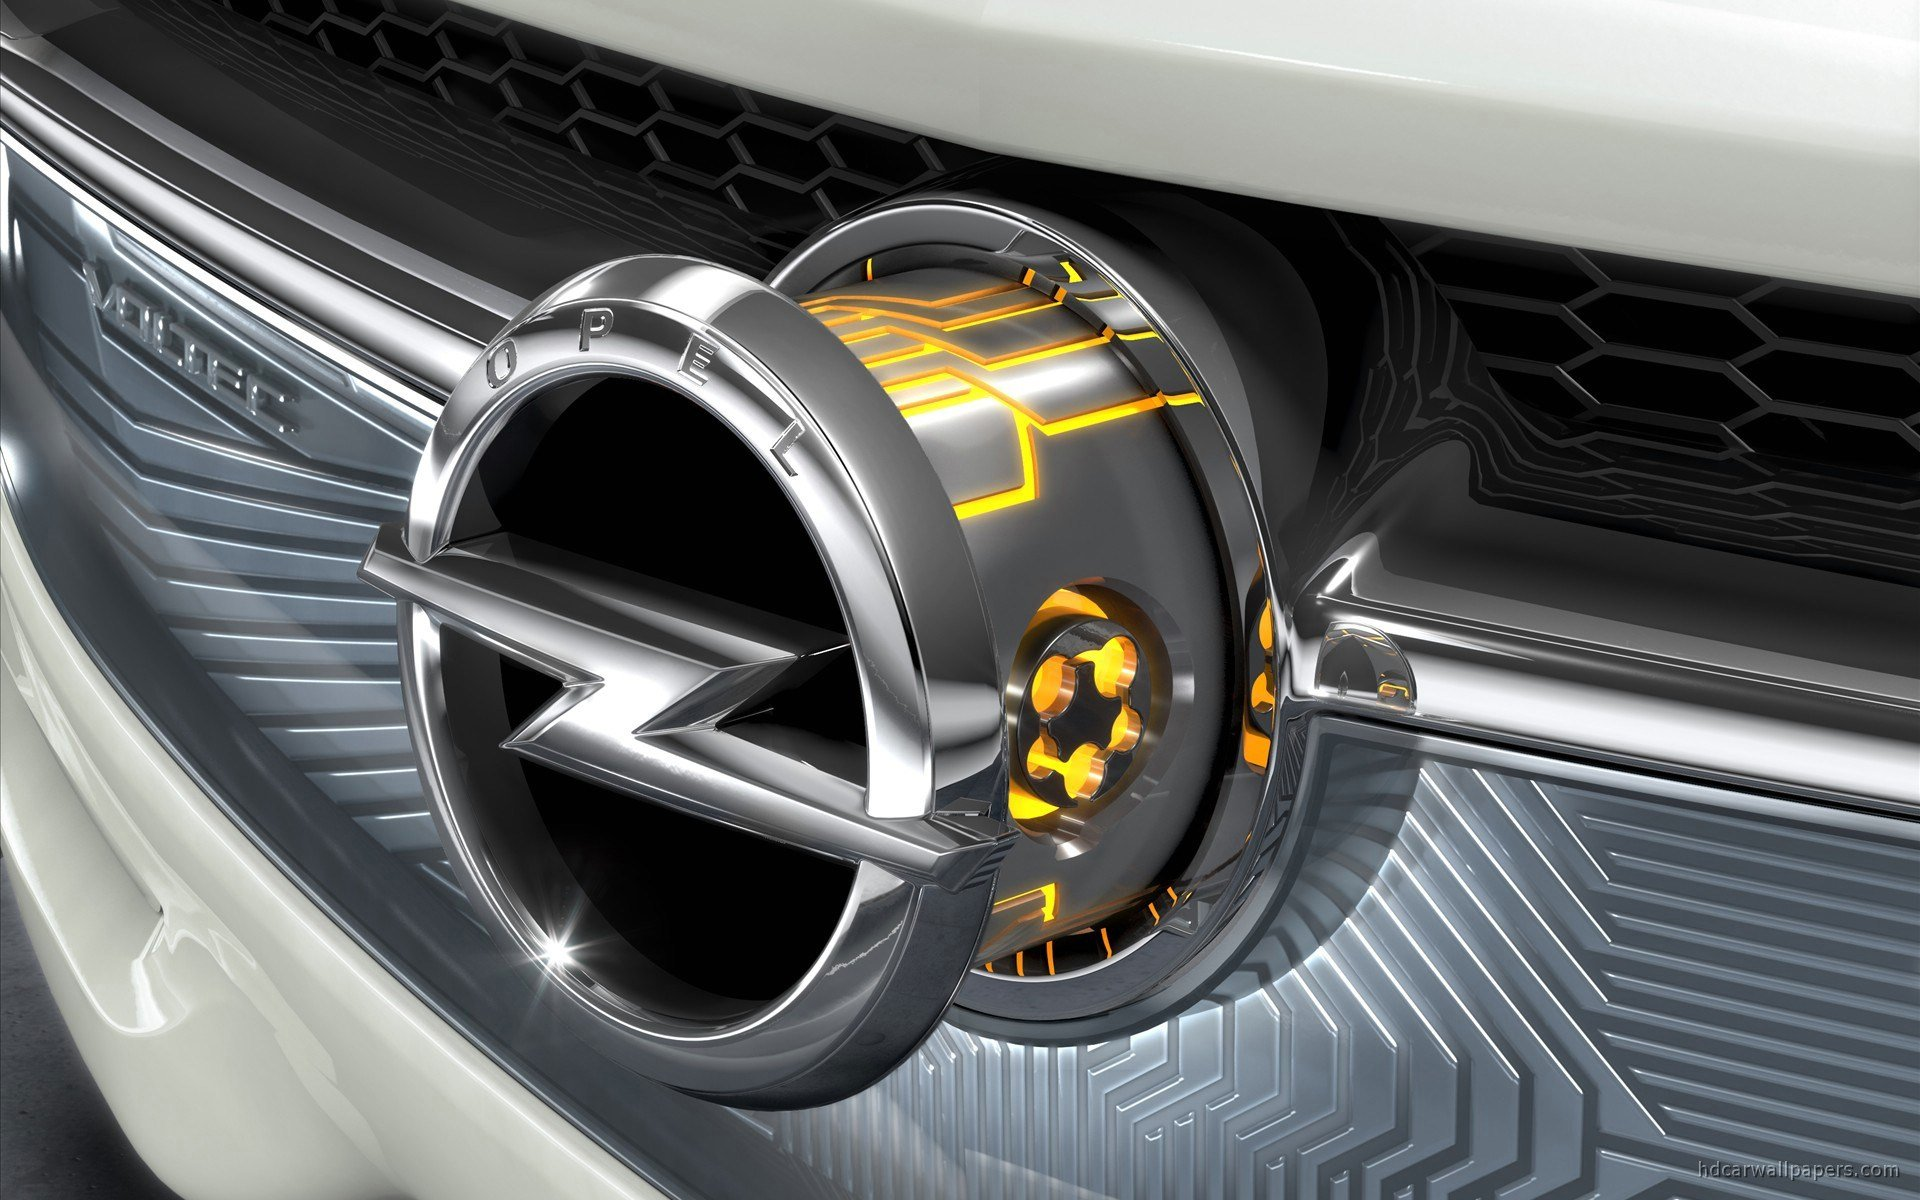 Latest 2010 Opel Concept Wallpaper Hd Car Wallpapers Id 1312 Free Download